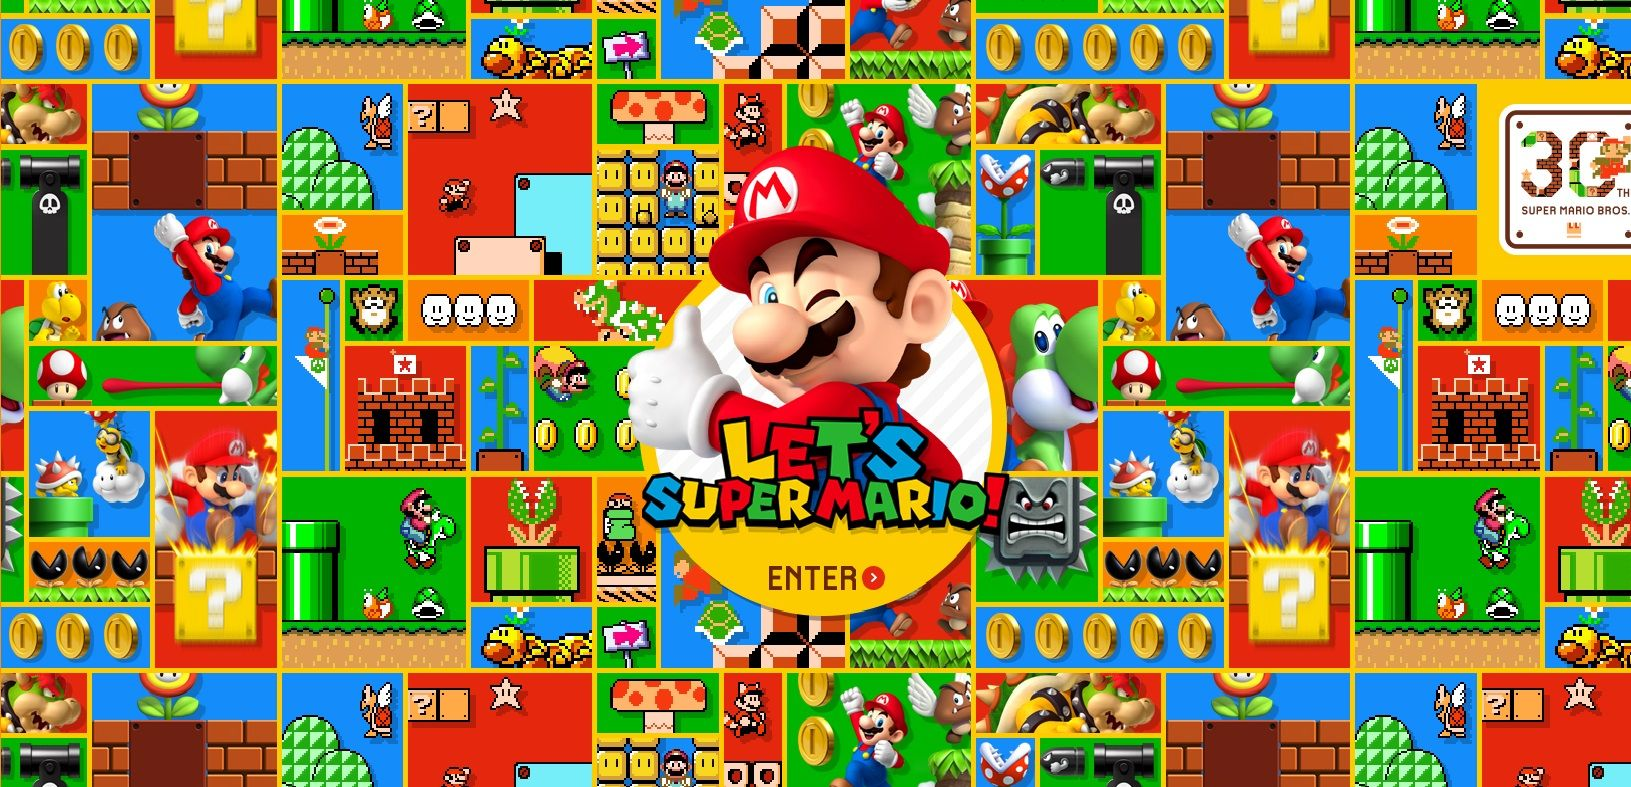 Super Mario Bros Hd Wallpapers We Love Hd Wallpapers With